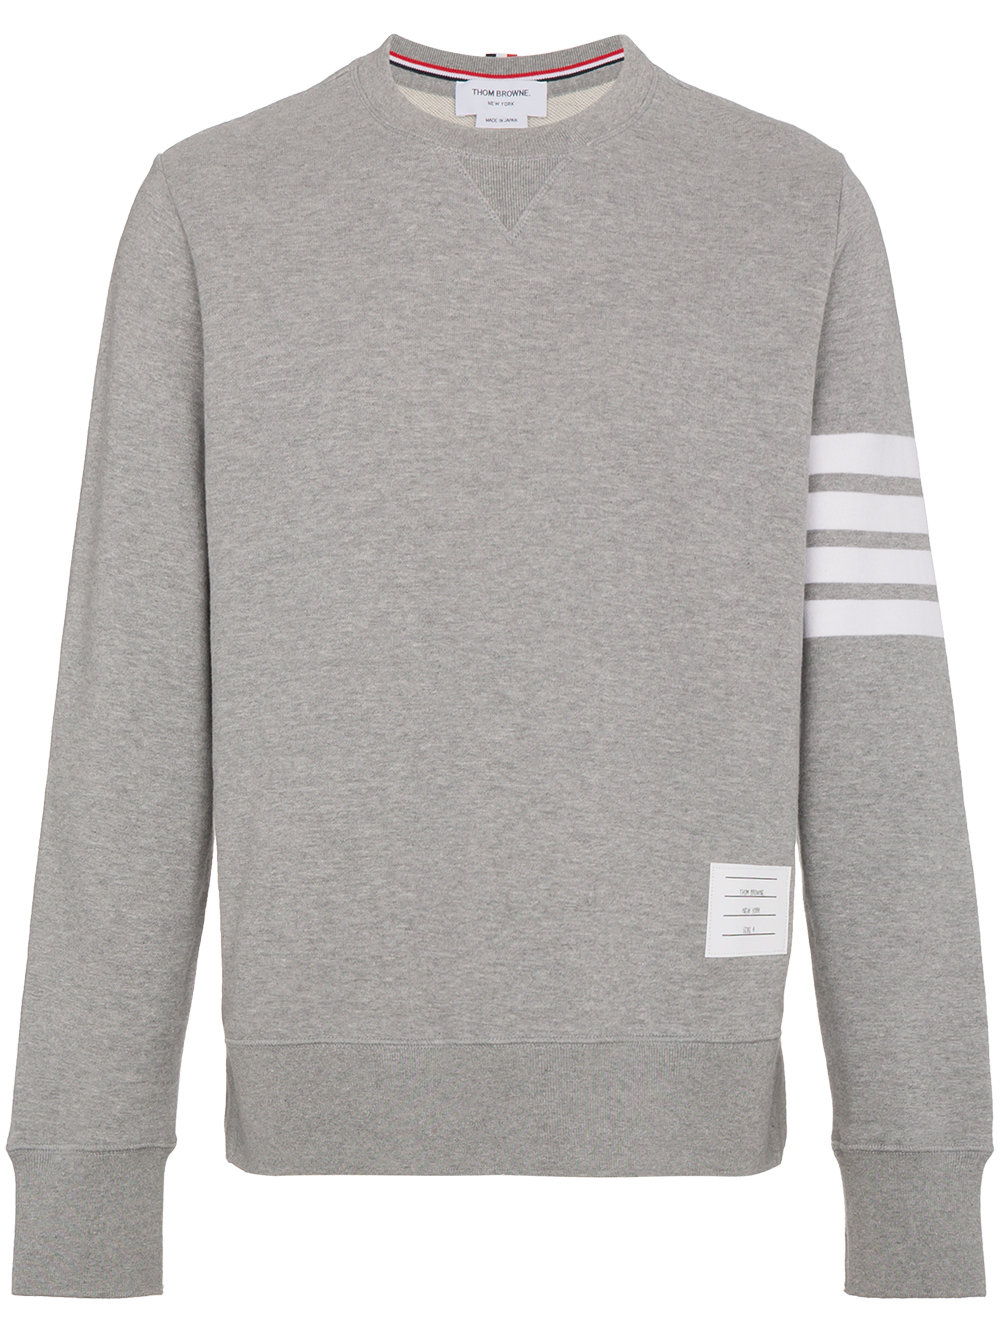 Thom Browne   Engineered Grey Four Bar Stripe Crewneck